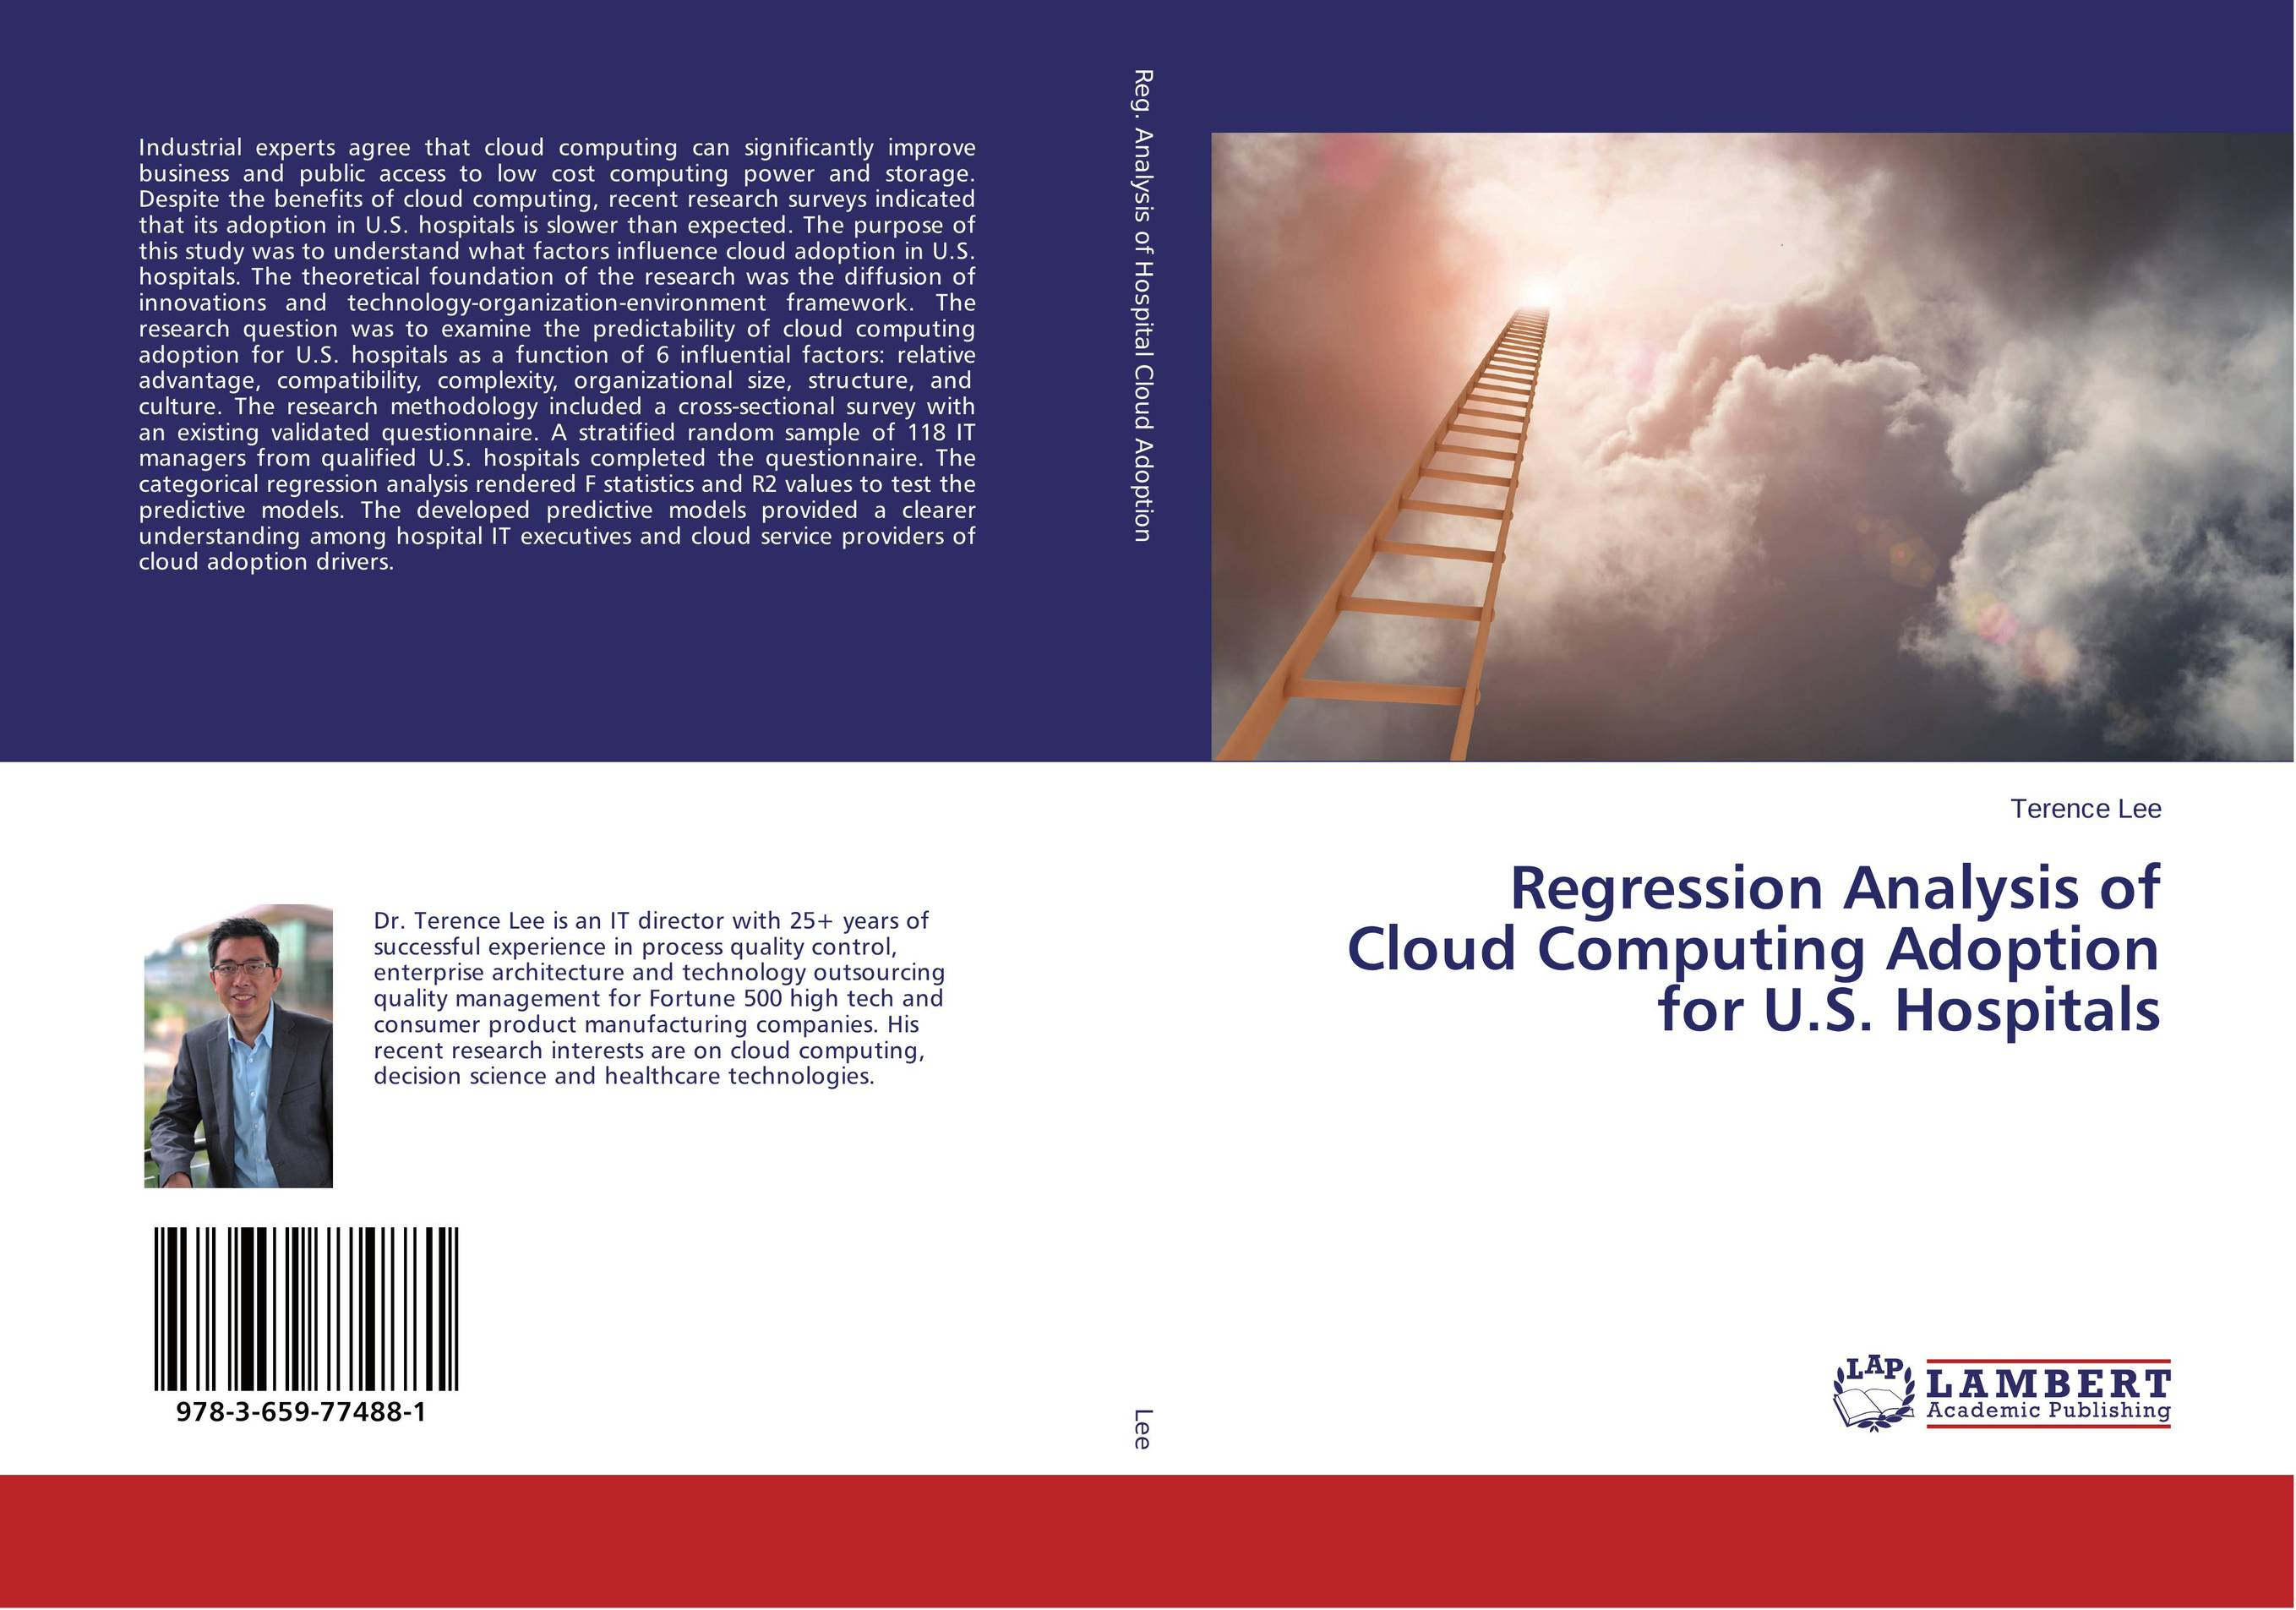 Regression Analysis of Cloud Computing Adoption for U.S. Hospitals regression analysis of cloud computing adoption for u s hospitals